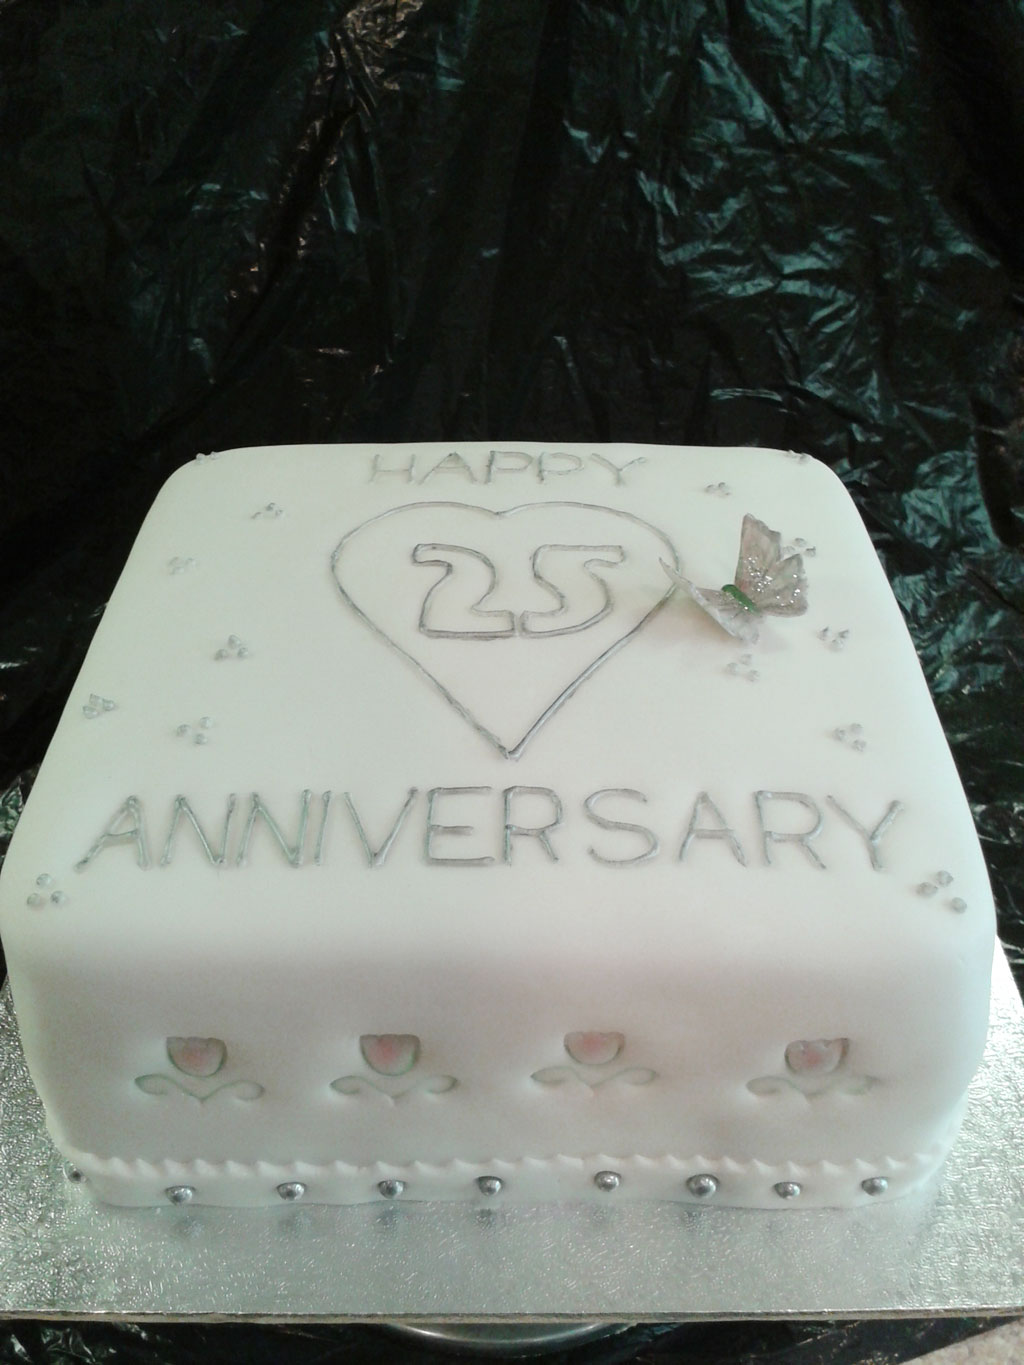 Wedding Anniversary Cake Design Ideas : 25th Wedding Anniversary Cake Idea To Copy Wedding Cake ...